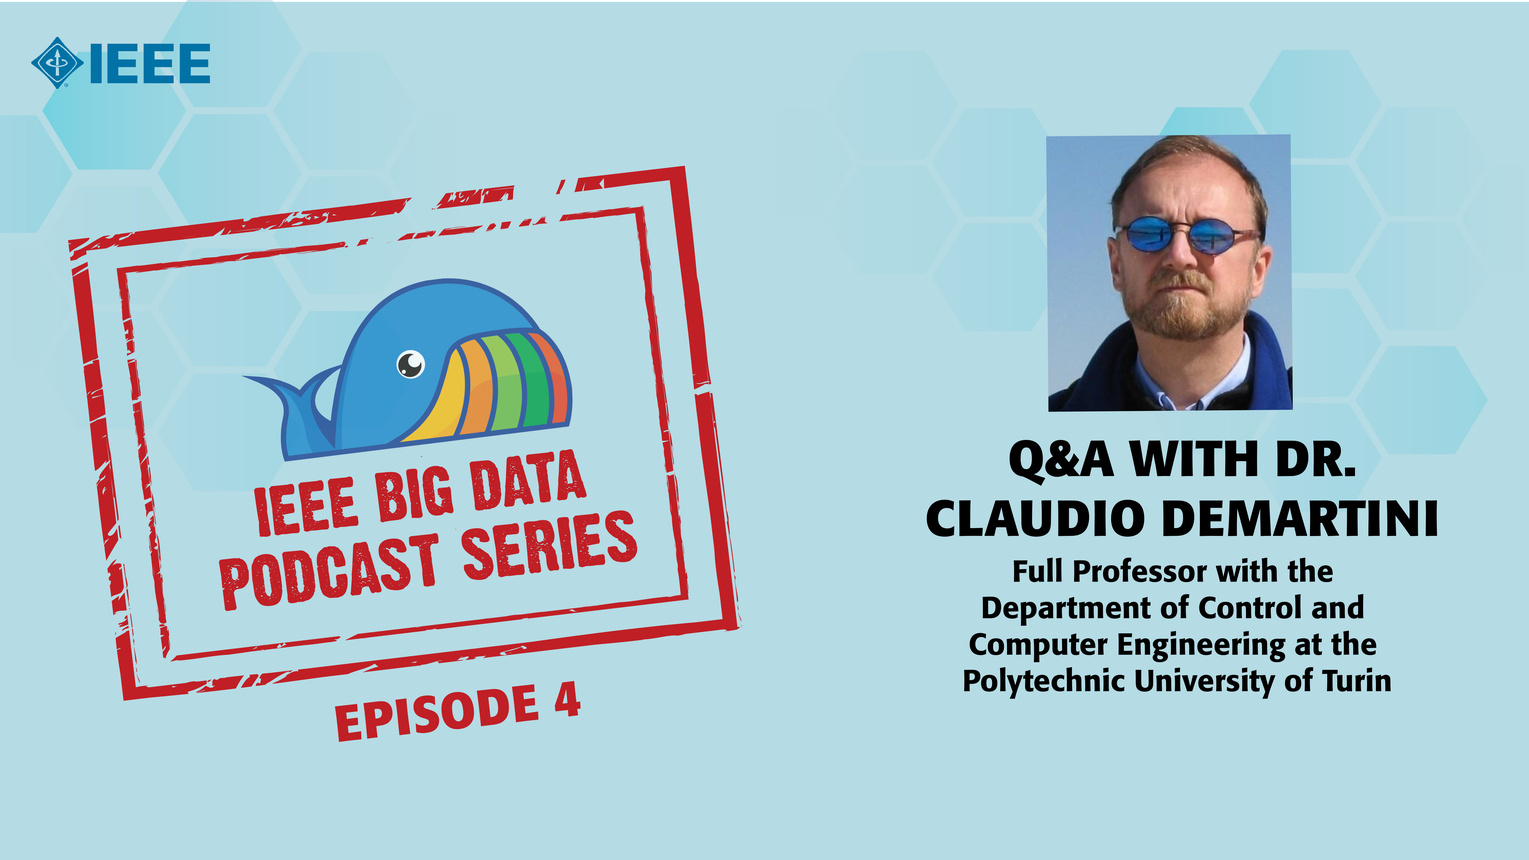 Q&A with Dr. Claudio Demartini: IEEE Big Data Podcast, Episode 4